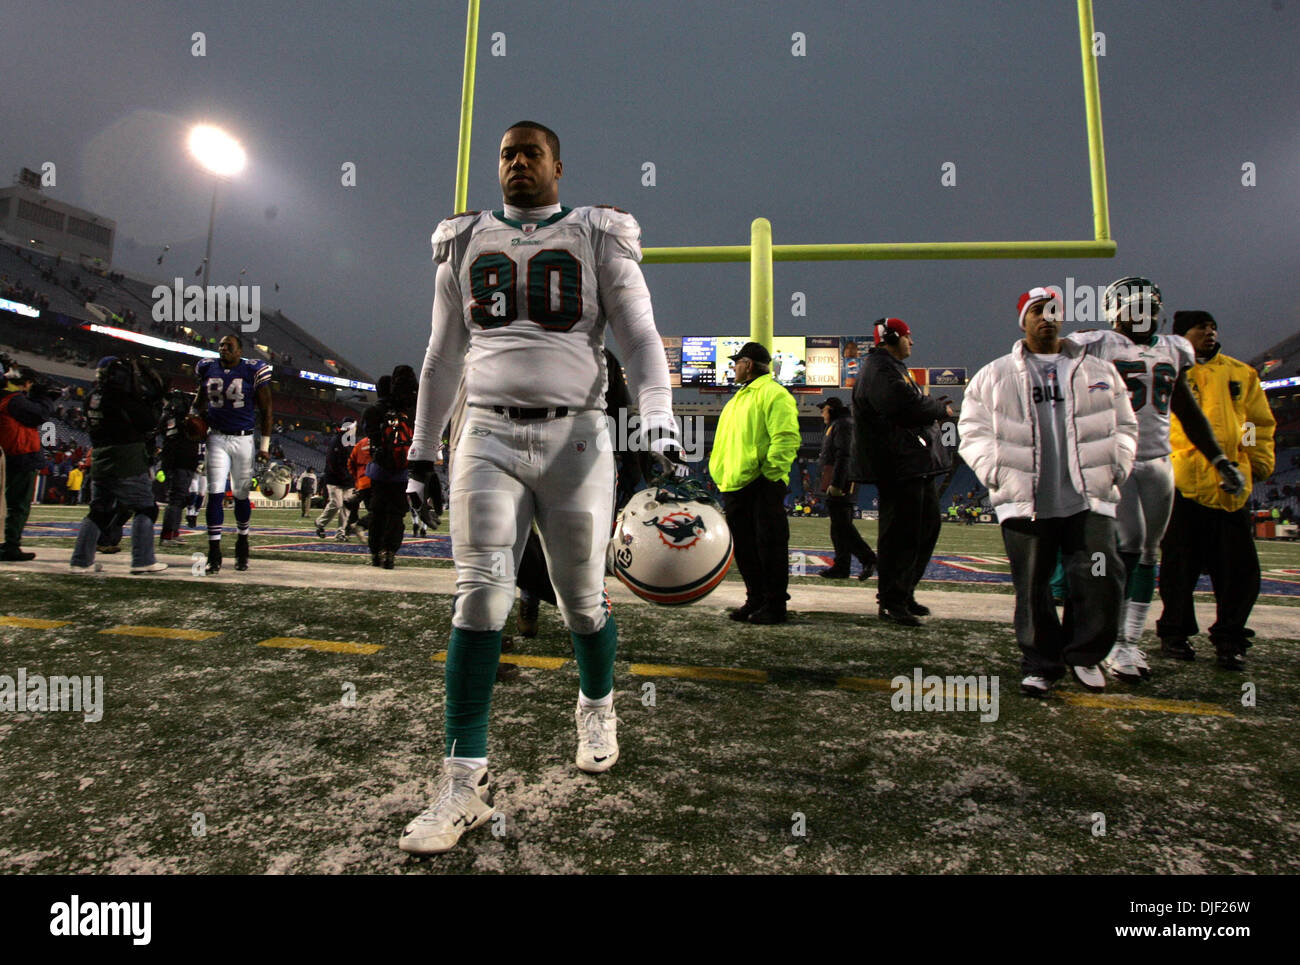 Dec 09, 2007 - Buffalo, New York, USA - Dolphins #90 RODRIQUE WRIGHT leaves the field after 38-17 loss to the Bills. Stock Photo